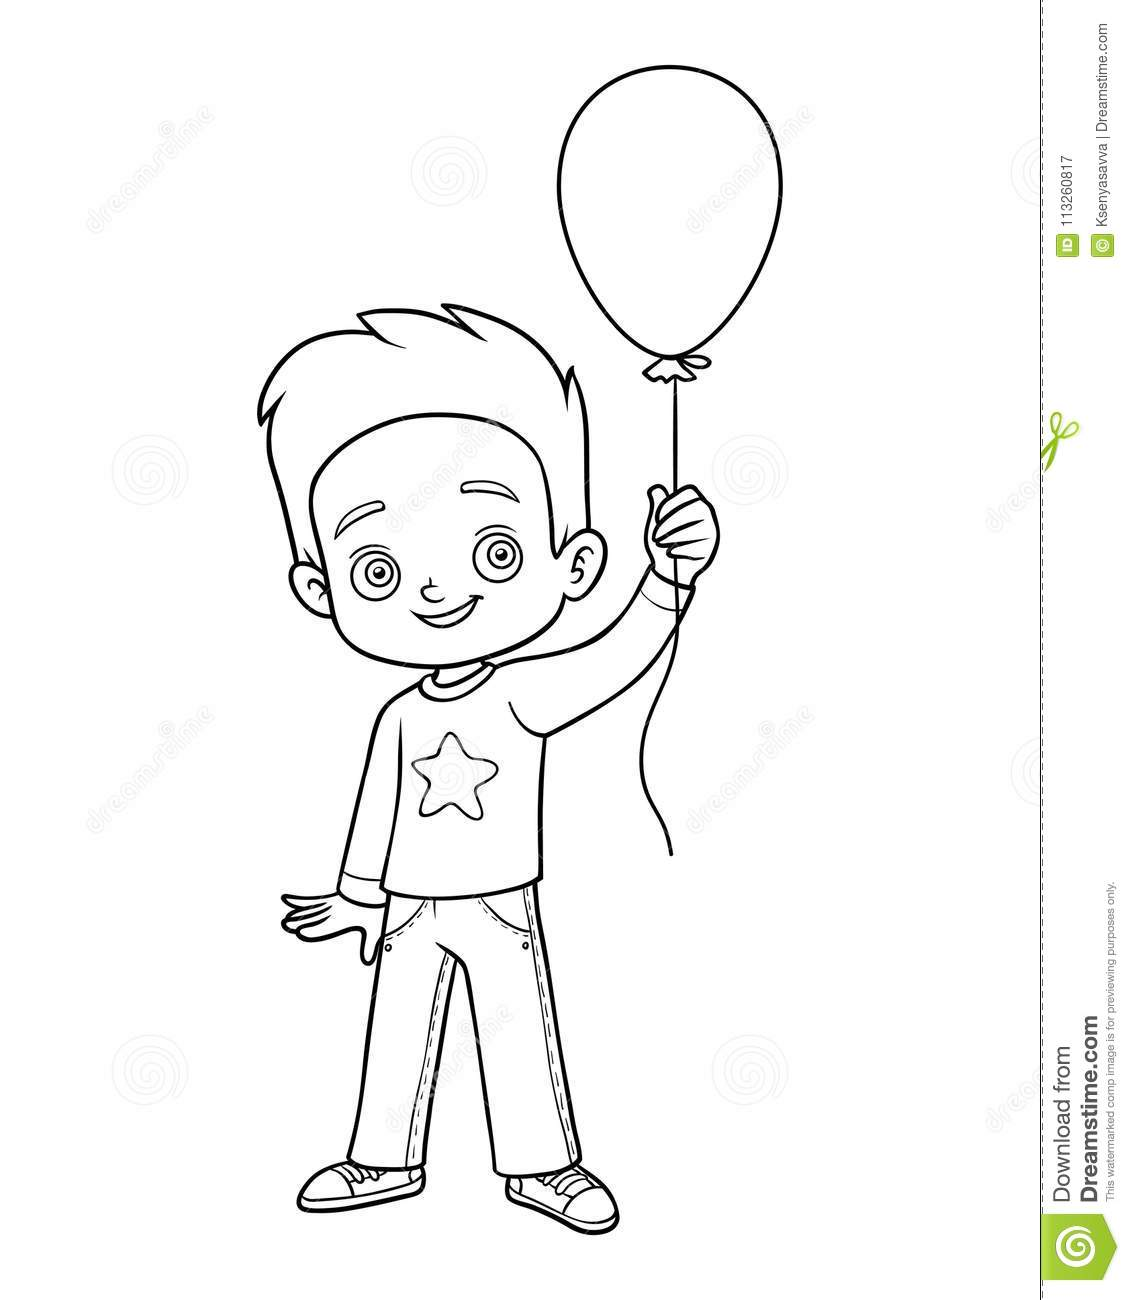 Coloring Book, Boy And Balloon Stock Vector - Illustration of game ...